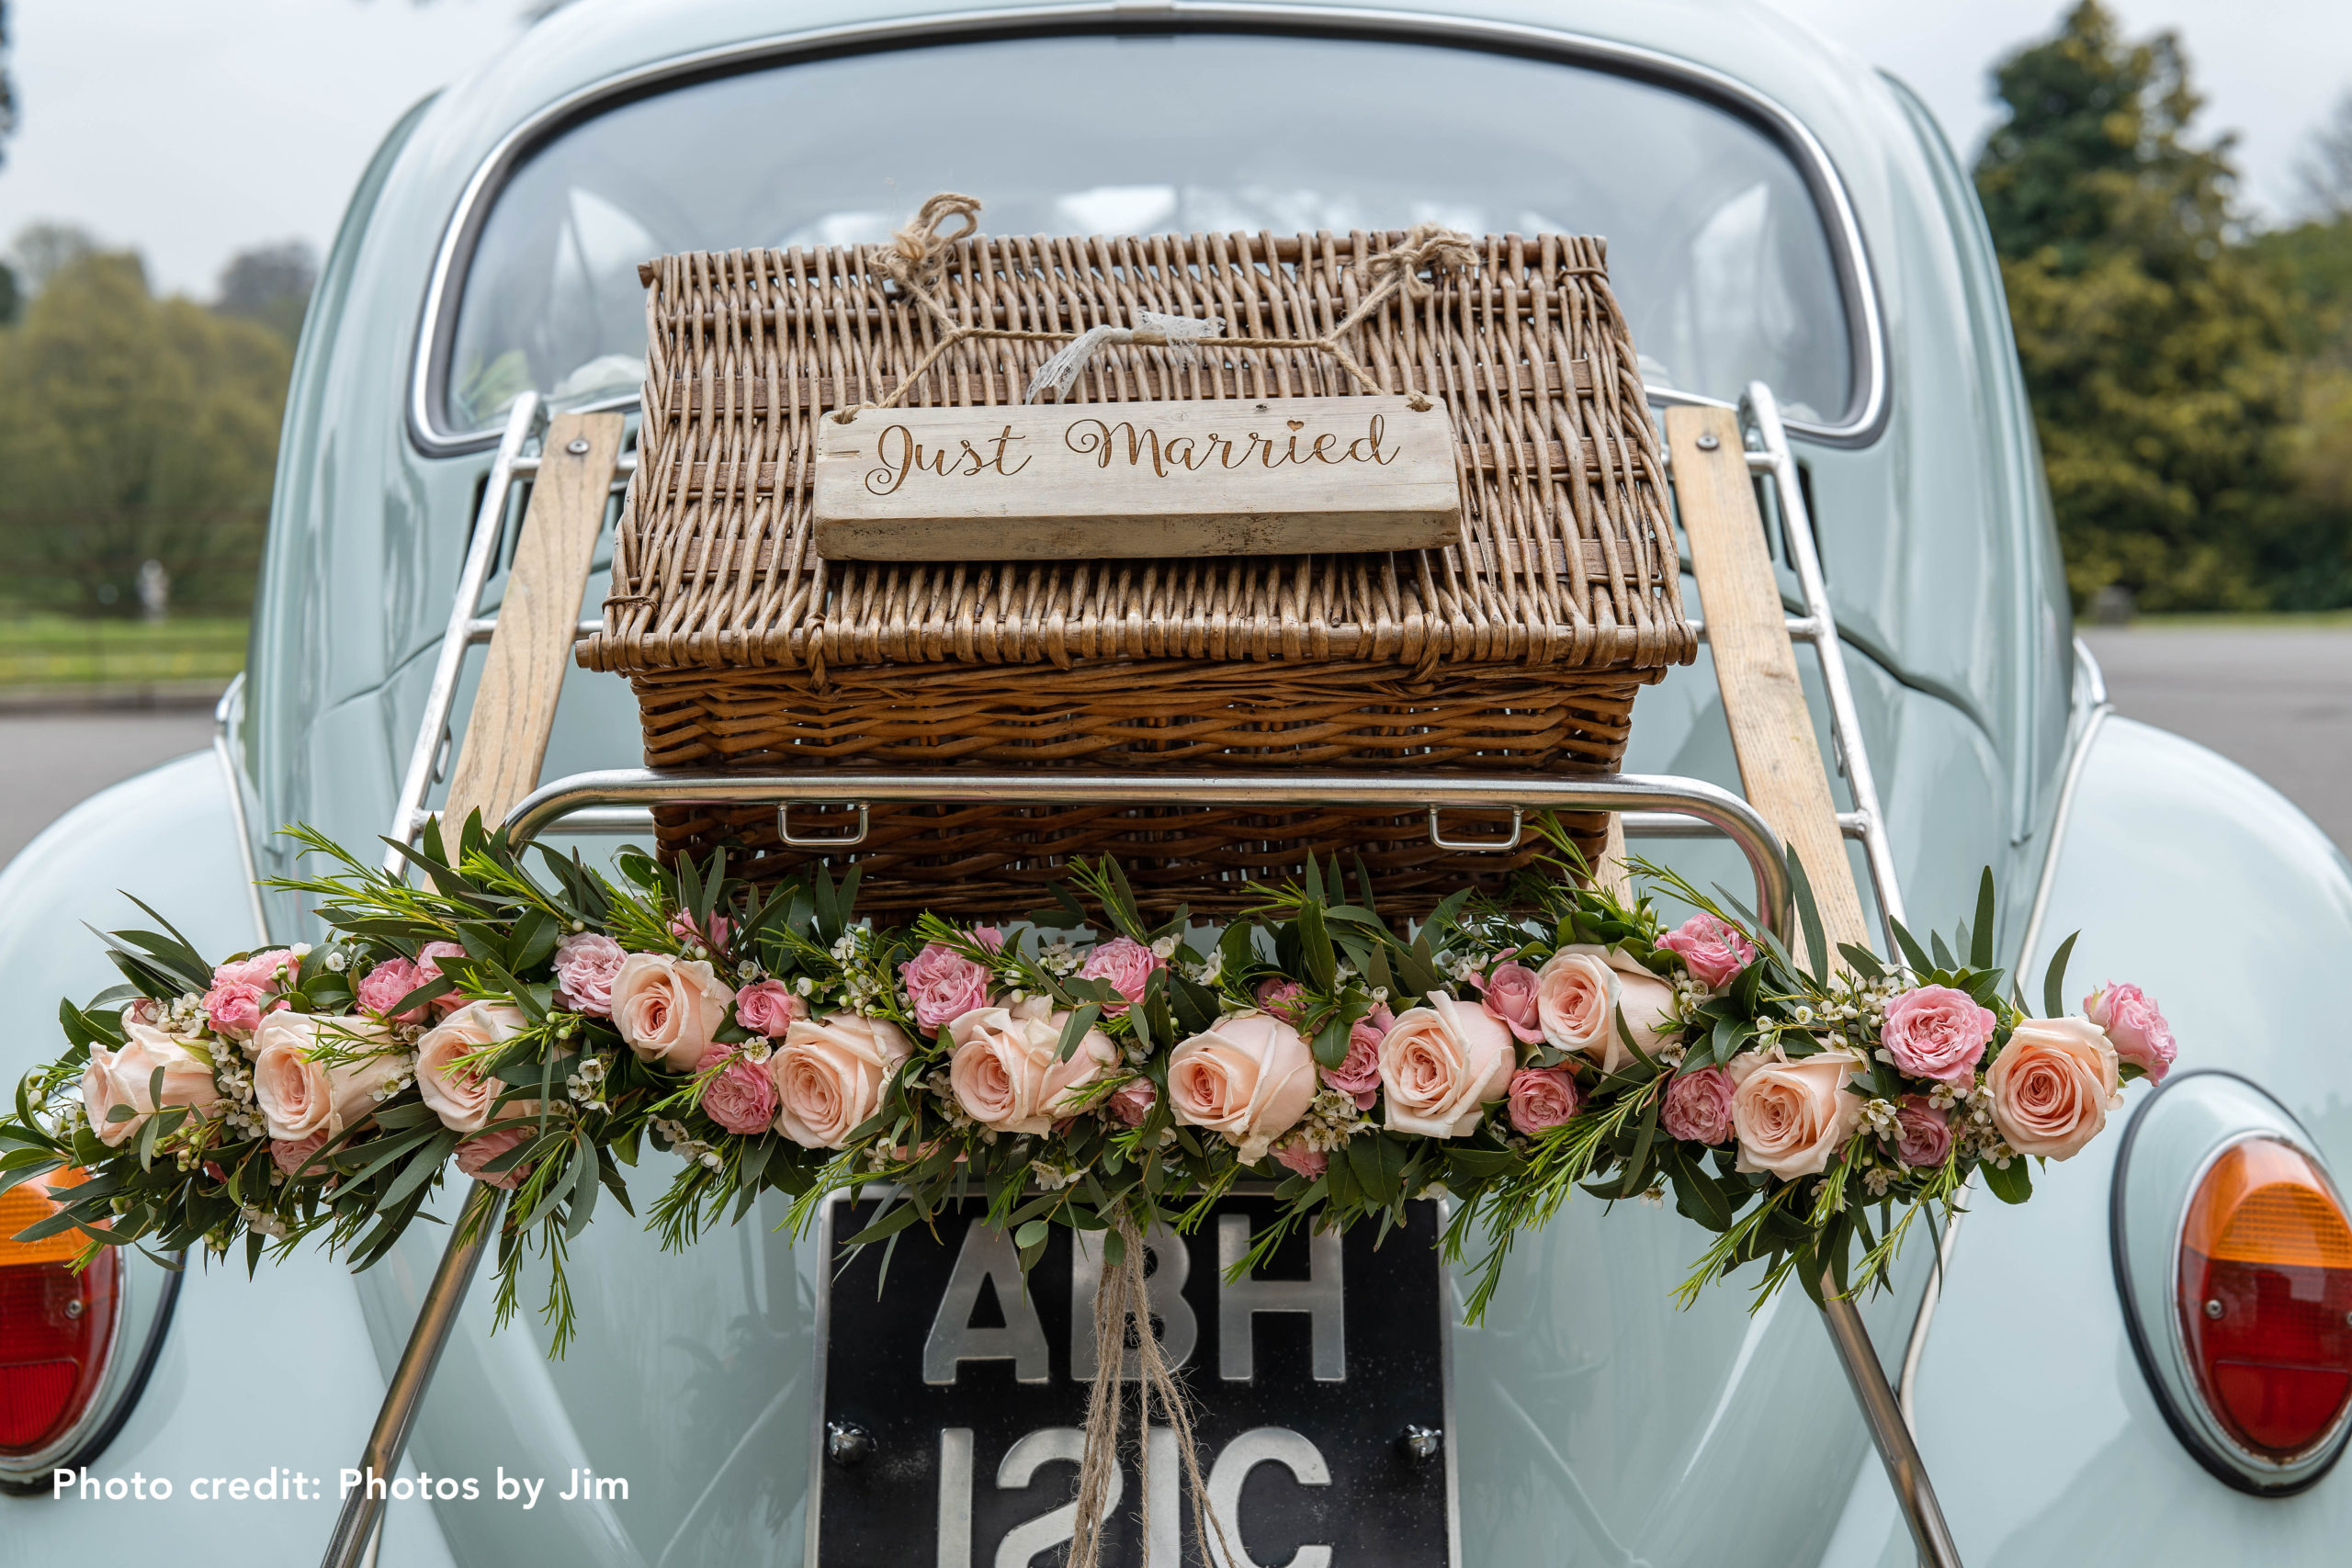 Light blue car with Just Married on a picnic basket on the back, wreath of flowers including light pink roses.